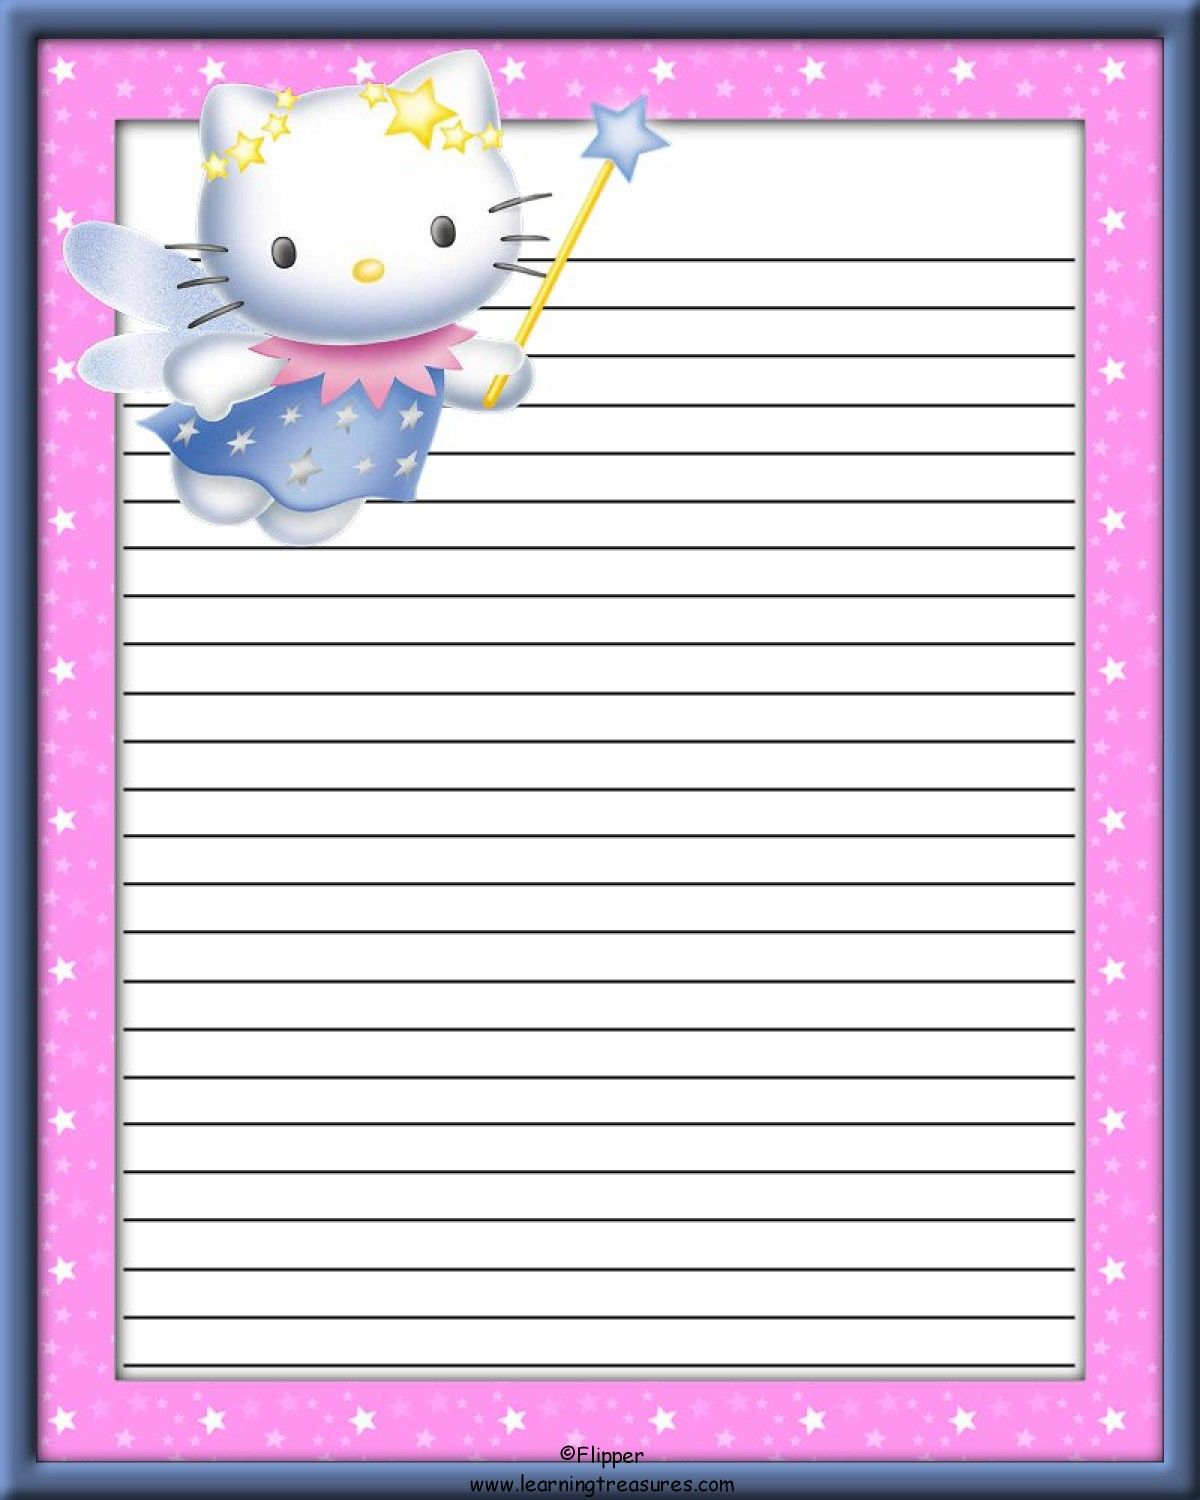 Printable Hello Kitty Stationery With Images